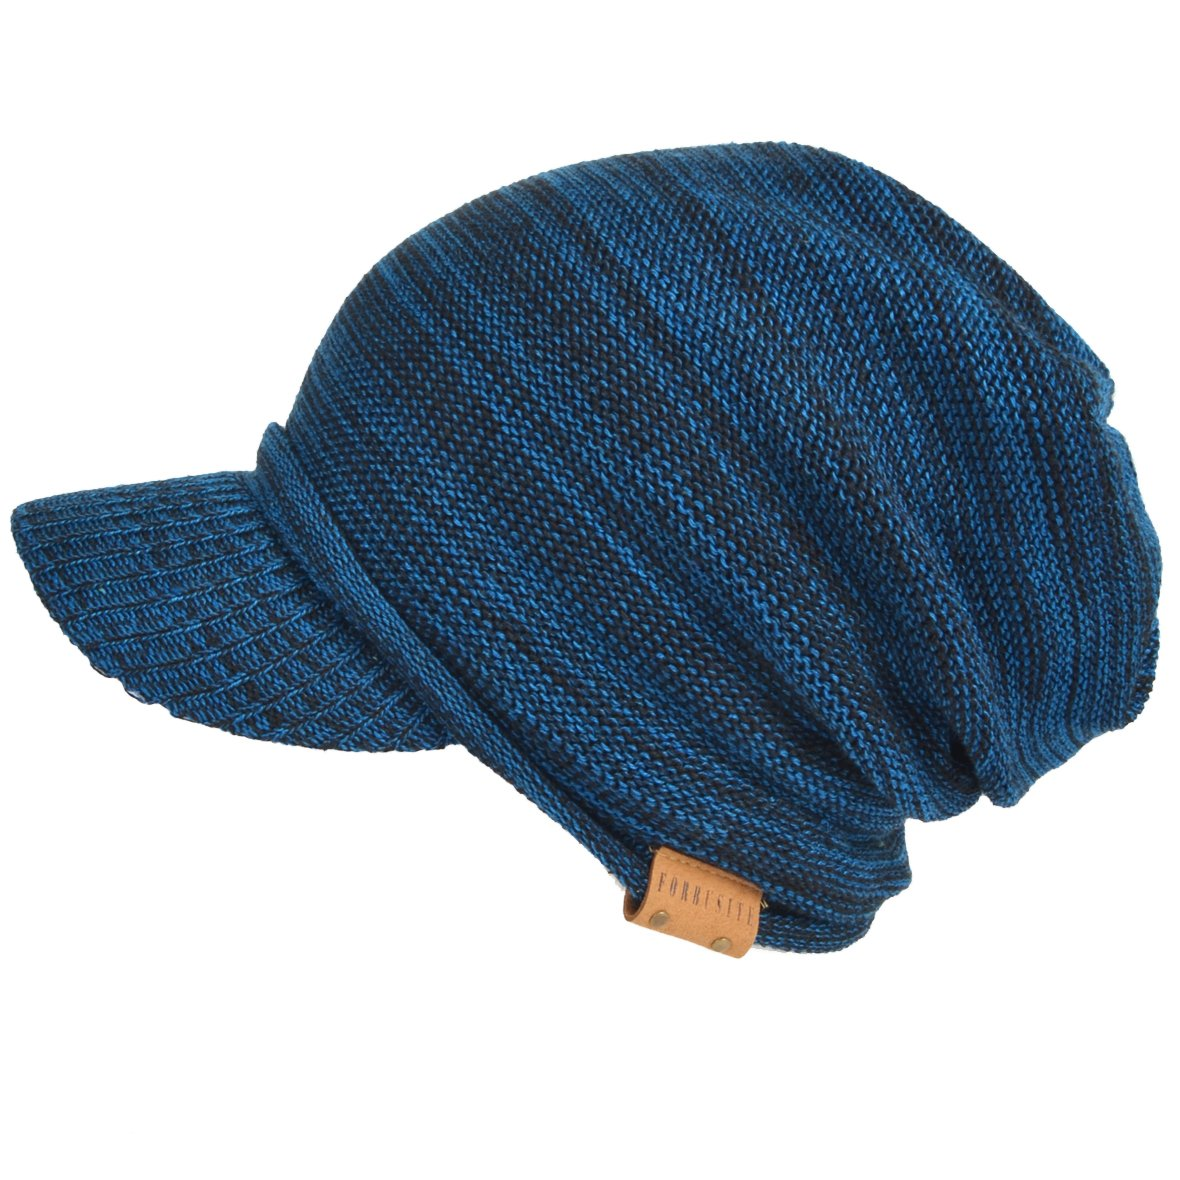 Mens Womens Thick Fleece Lined Knit Newsboy Cap Slouch Beanie Hat with  Visor (Blue) at Amazon Men s Clothing store  ee2734b6582